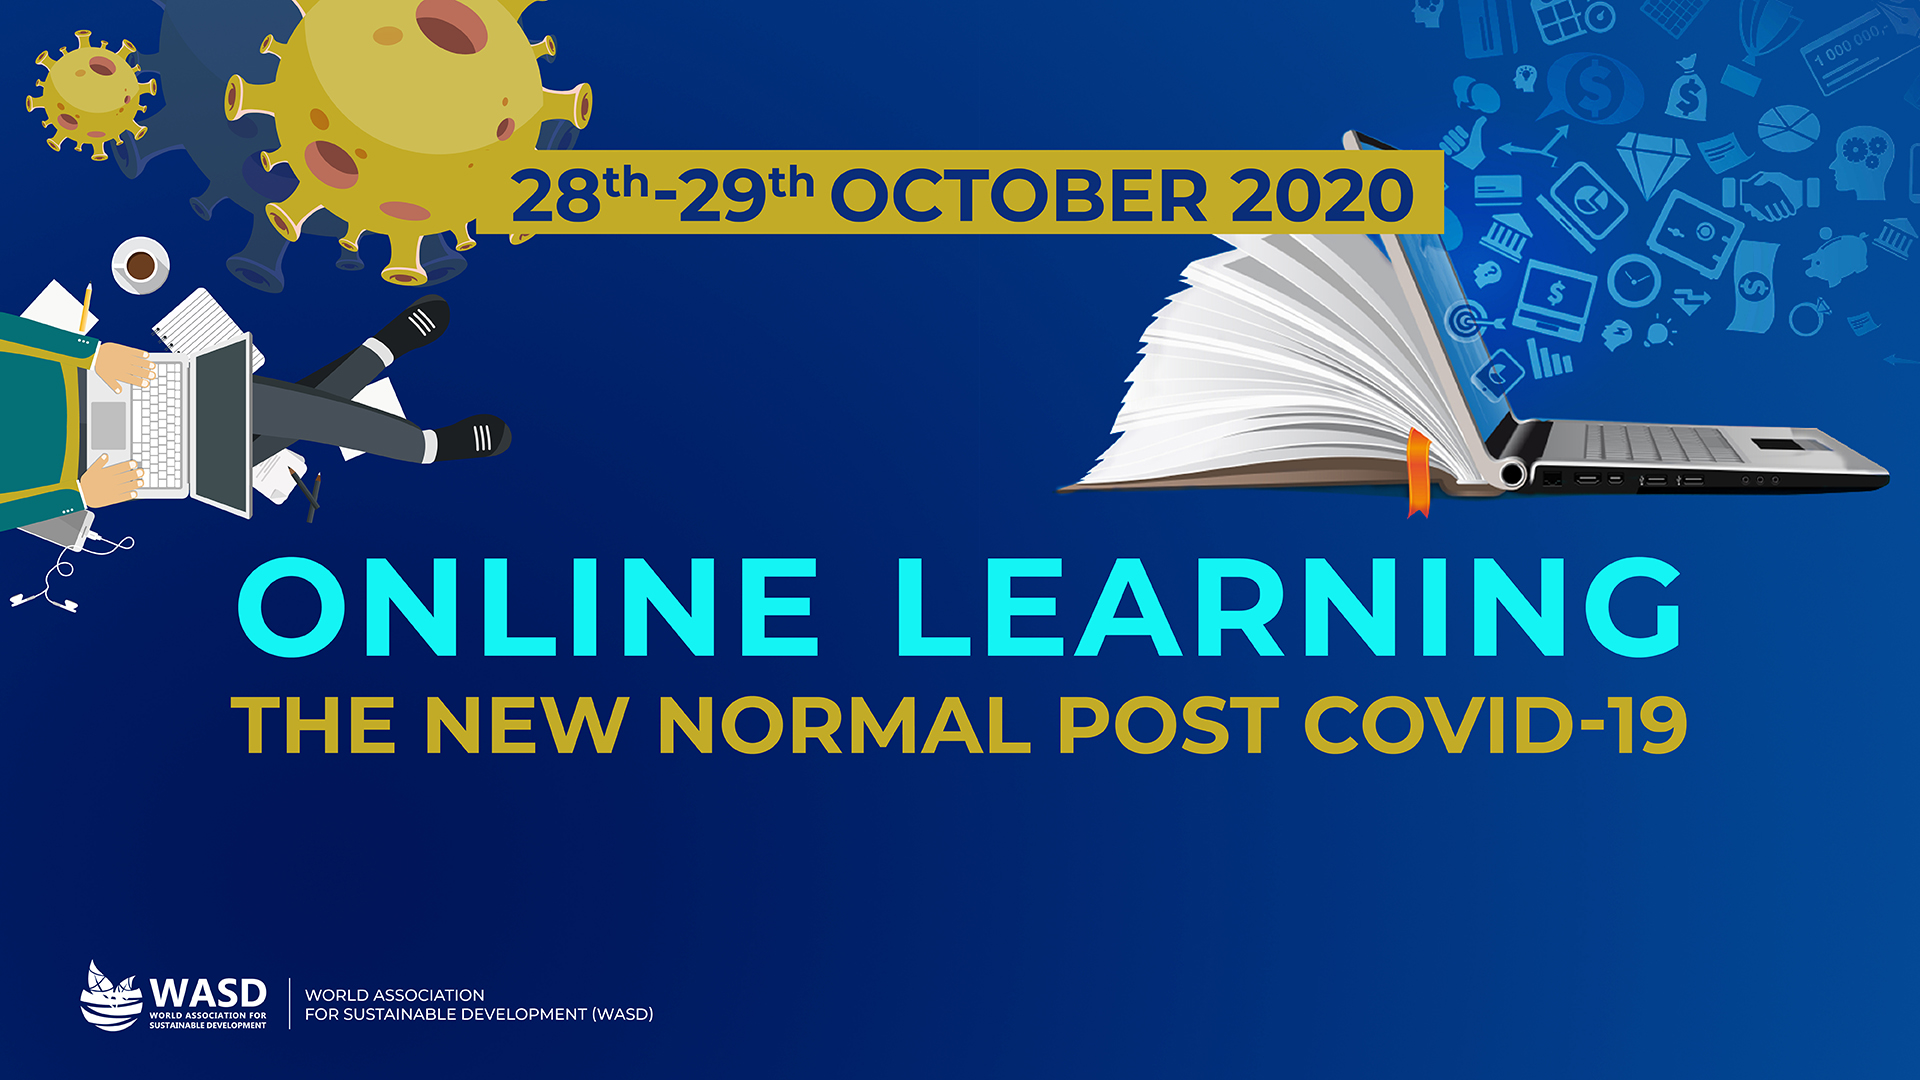 Online Learning Conference, London, UK 2020<div style='clear:both;width:100%;height:0px;'></div><span class='cat'>Sustainability Conferences</span>